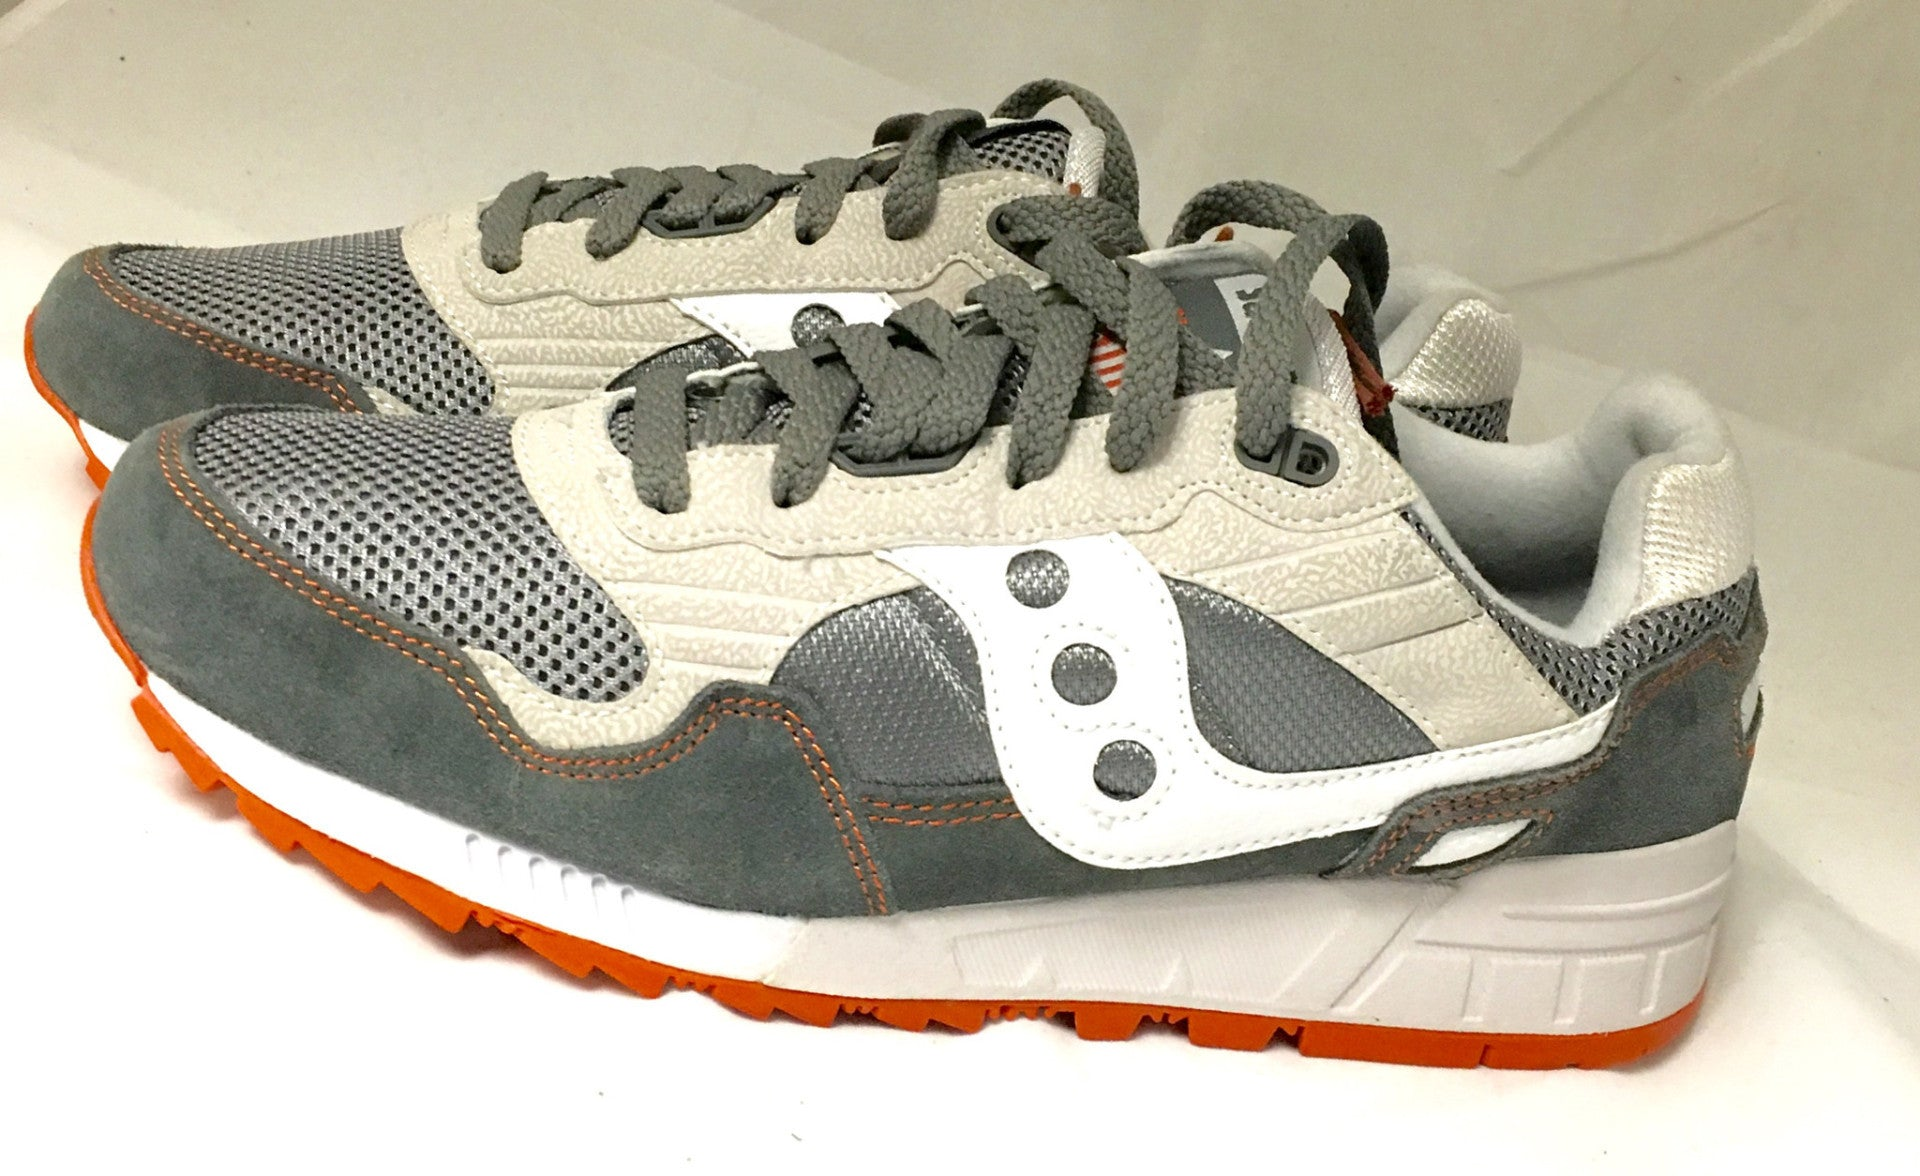 separation shoes 06273 d89f0 Men's Saucony Shadow 5000 •Grey/White/Orange• Running Shoe